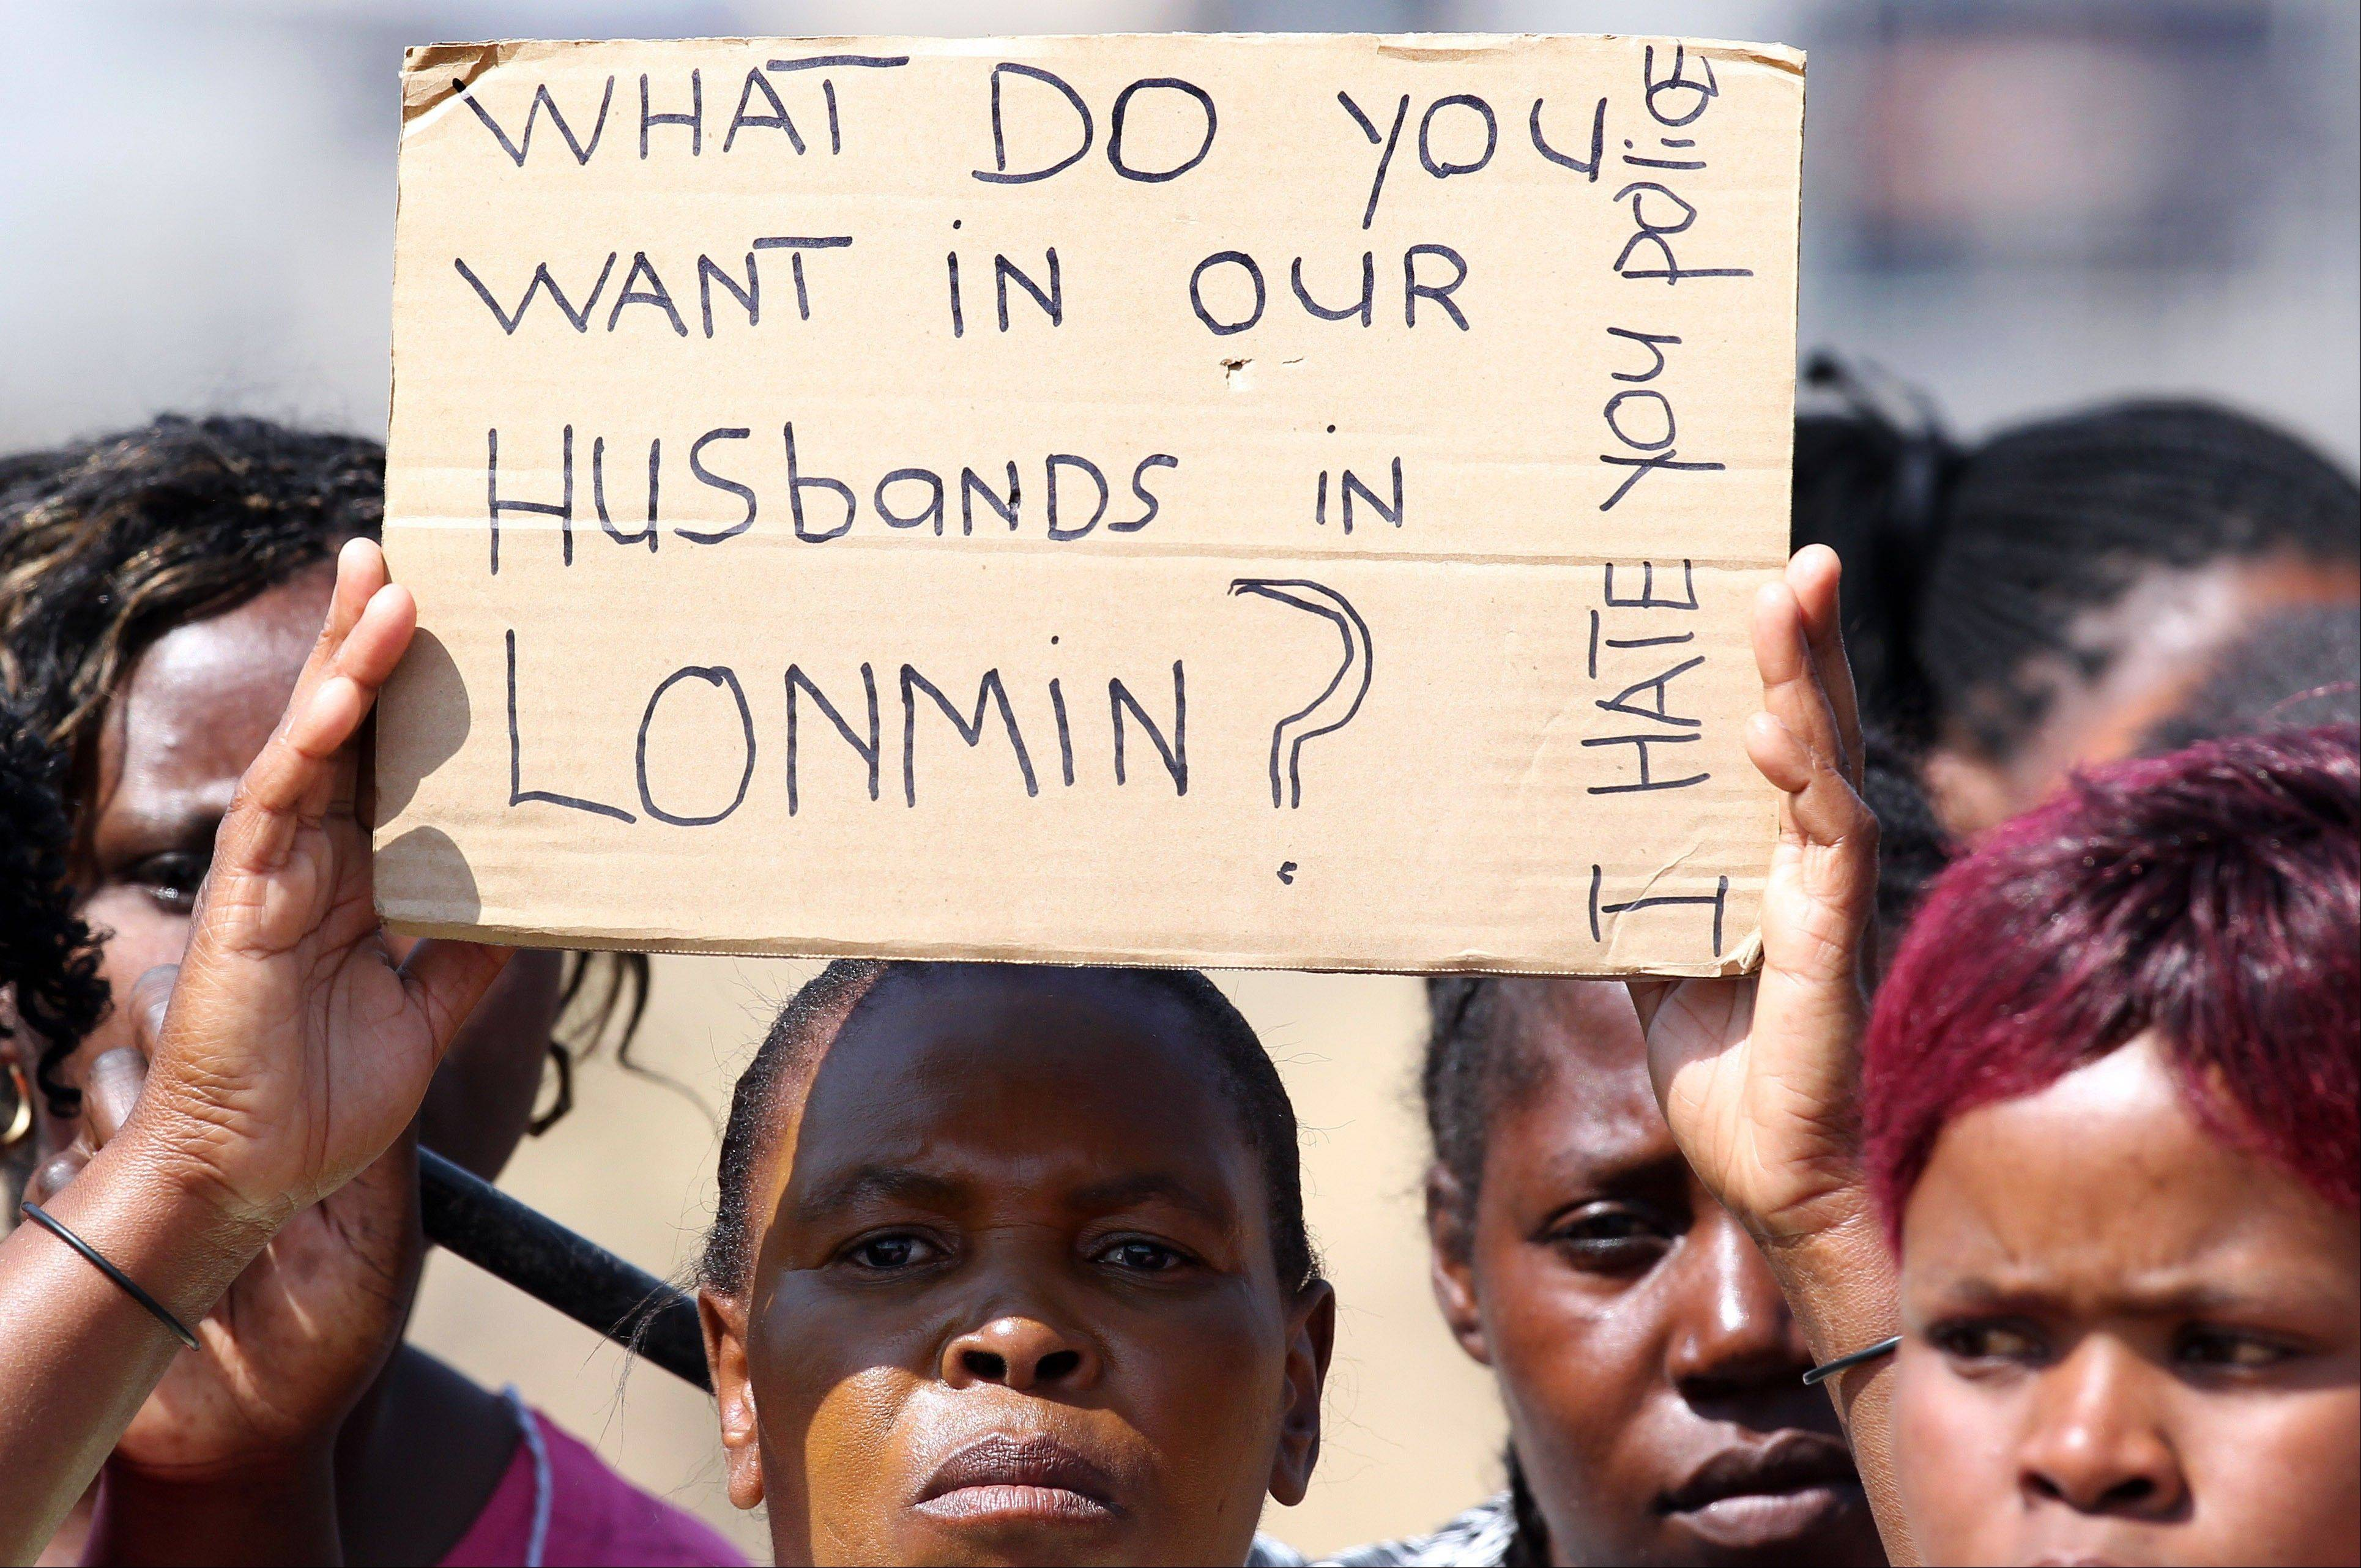 A woman holds a placard as she protests against the police shooting of miners Thursday at the Lonmin mine near Rustenburg, South Africa, Friday, Aug. 17, 2012. Police chief Mangwashi Victoria Phiyega says 34 miners died and another 78 were wounded when police opened fire on strikers in one of the worst police shootings in South Africa since apartheid.